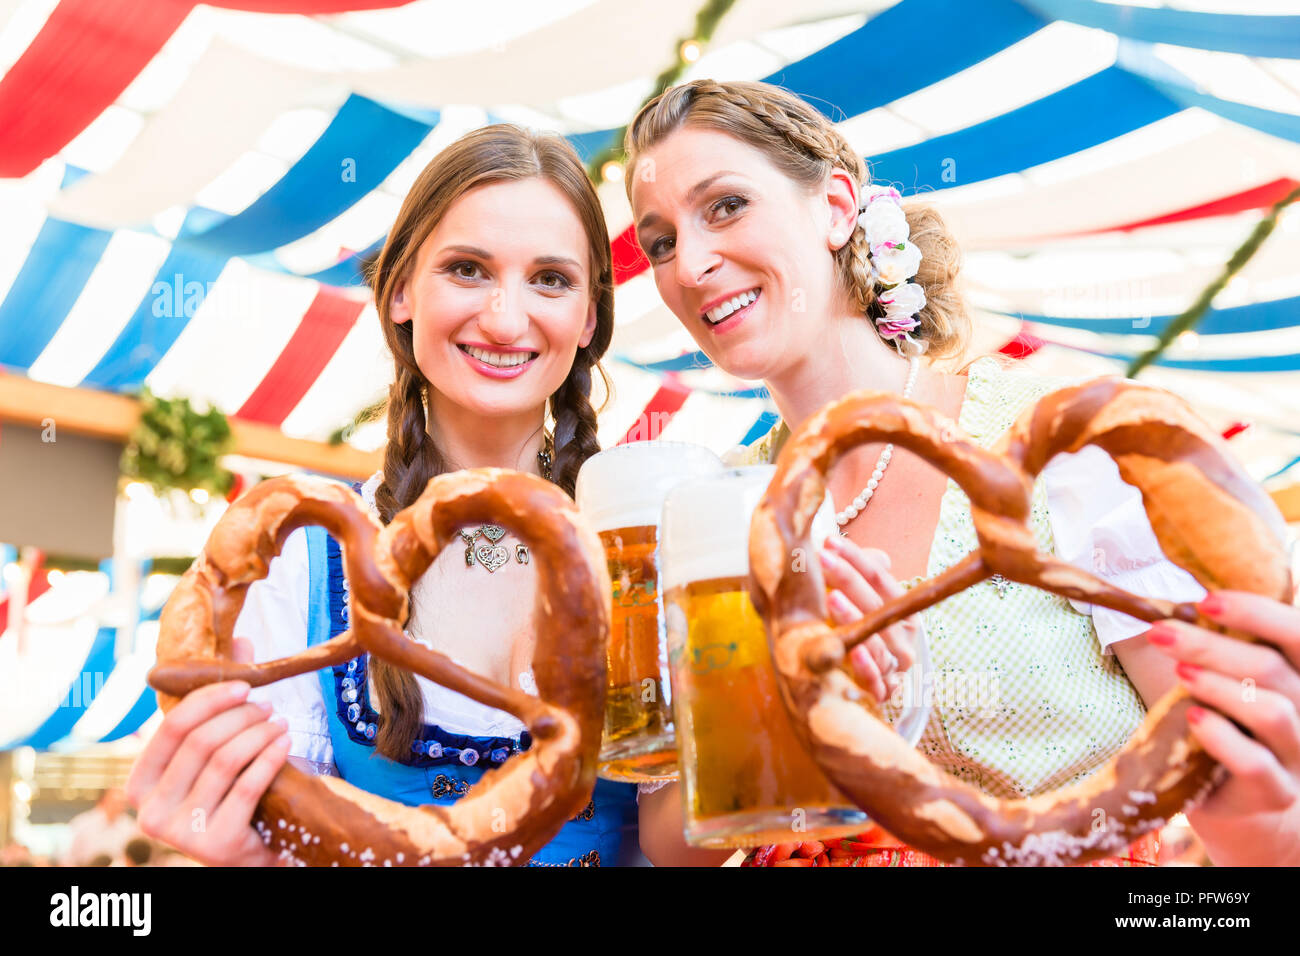 Friends at Bavarian Fair with giant pretzels - Stock Image